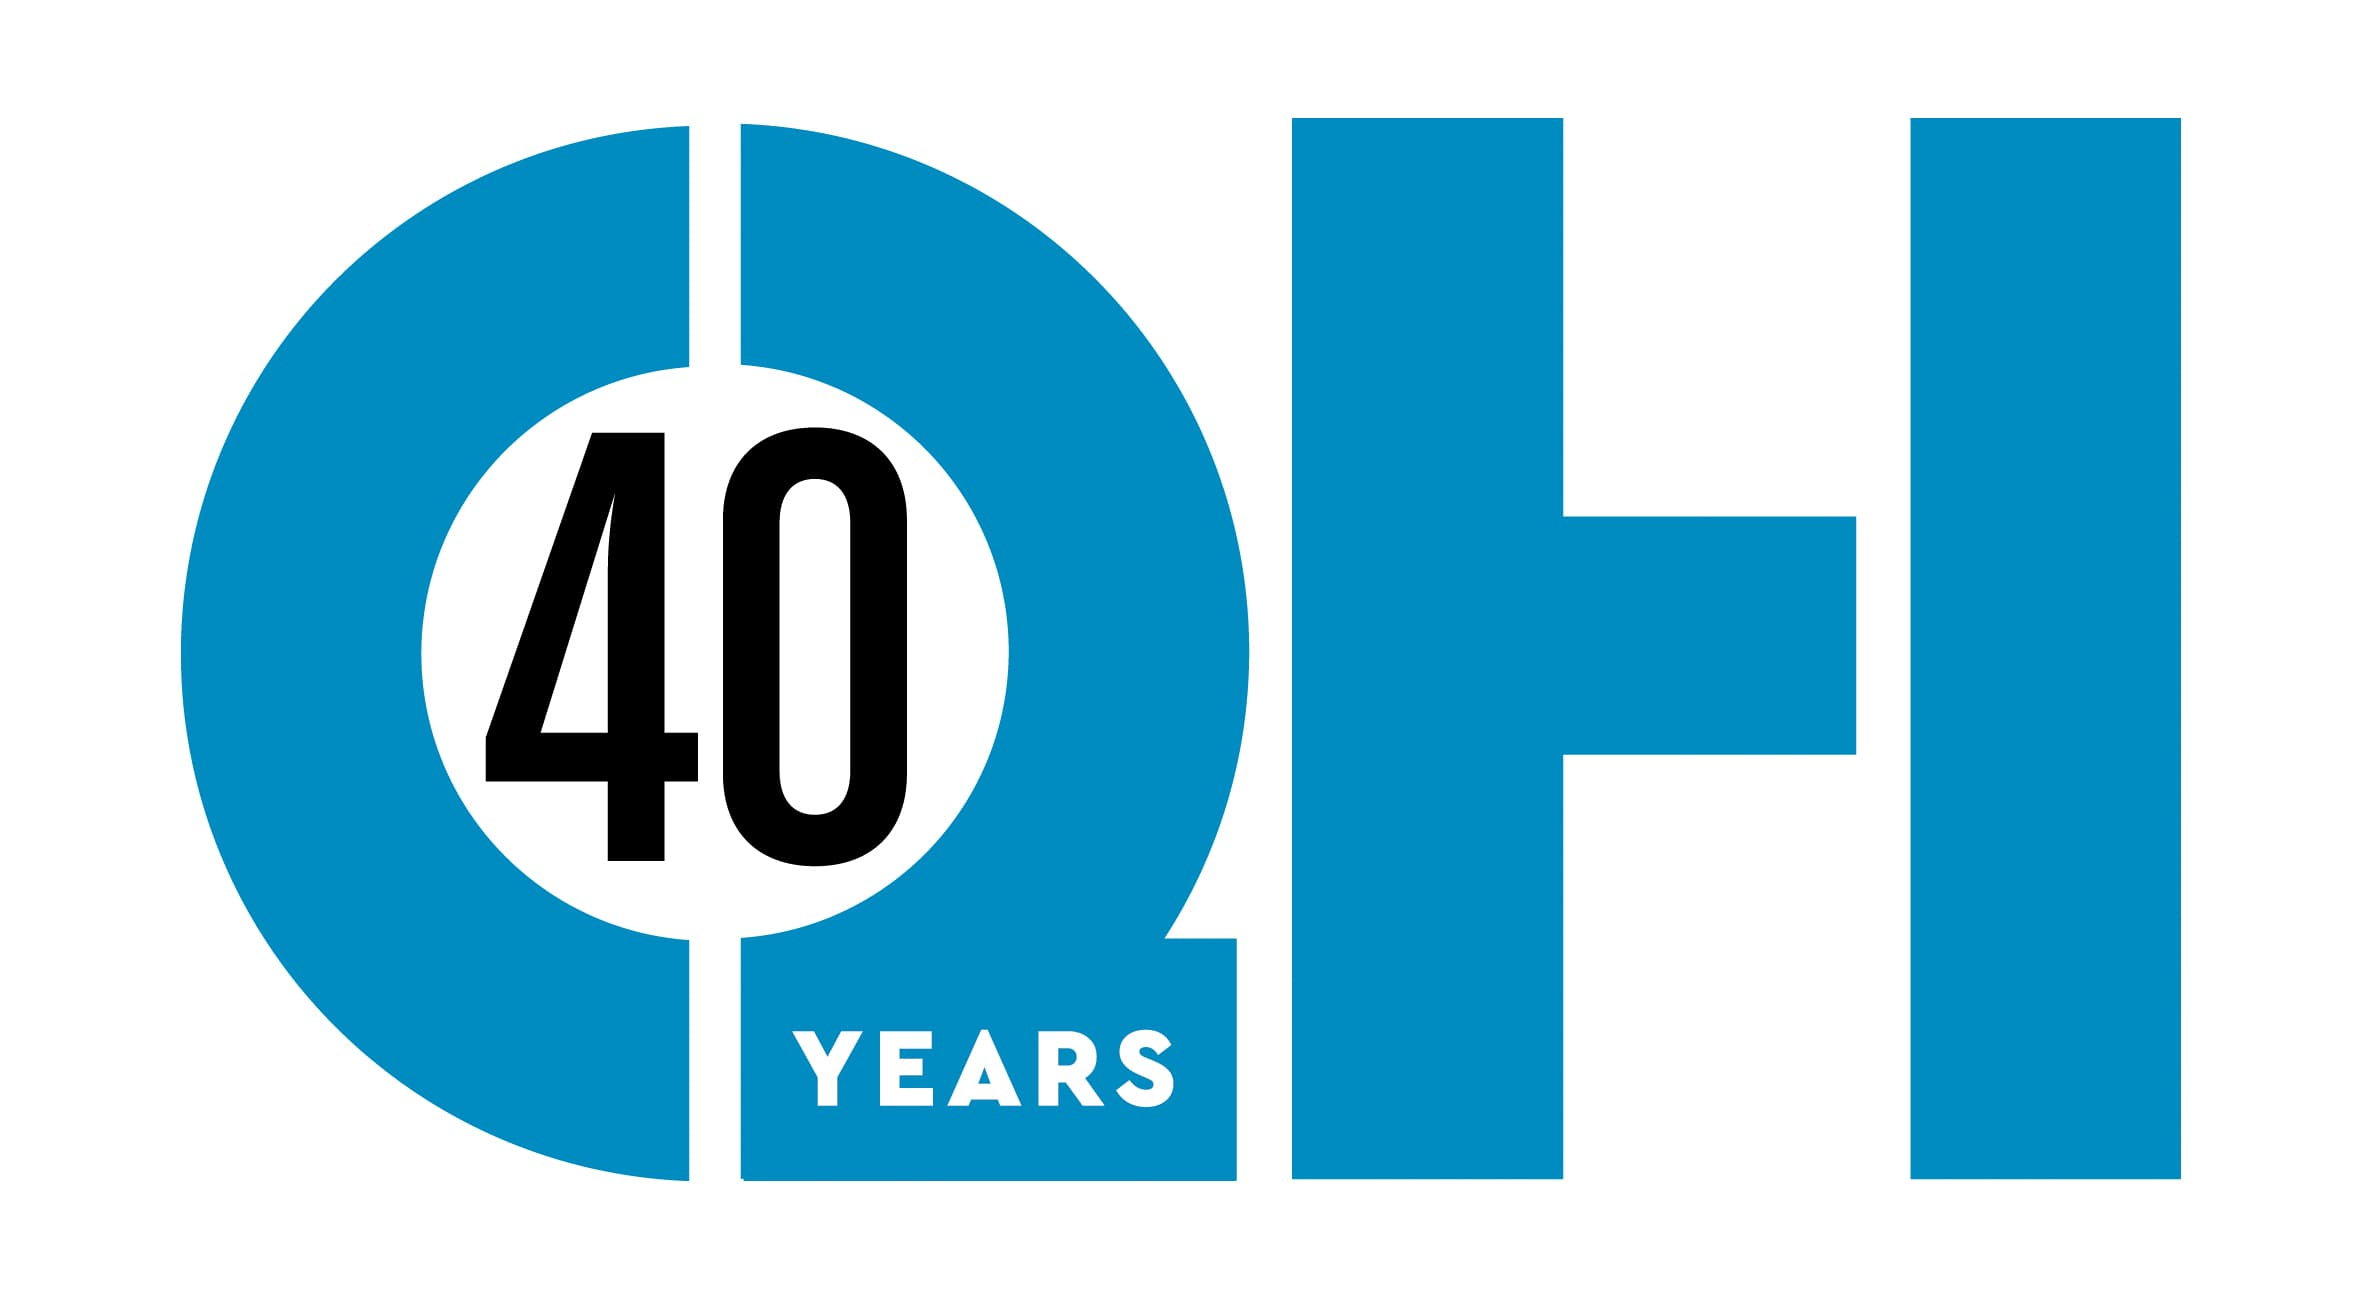 The Queen's Hall 40th anniversary logo